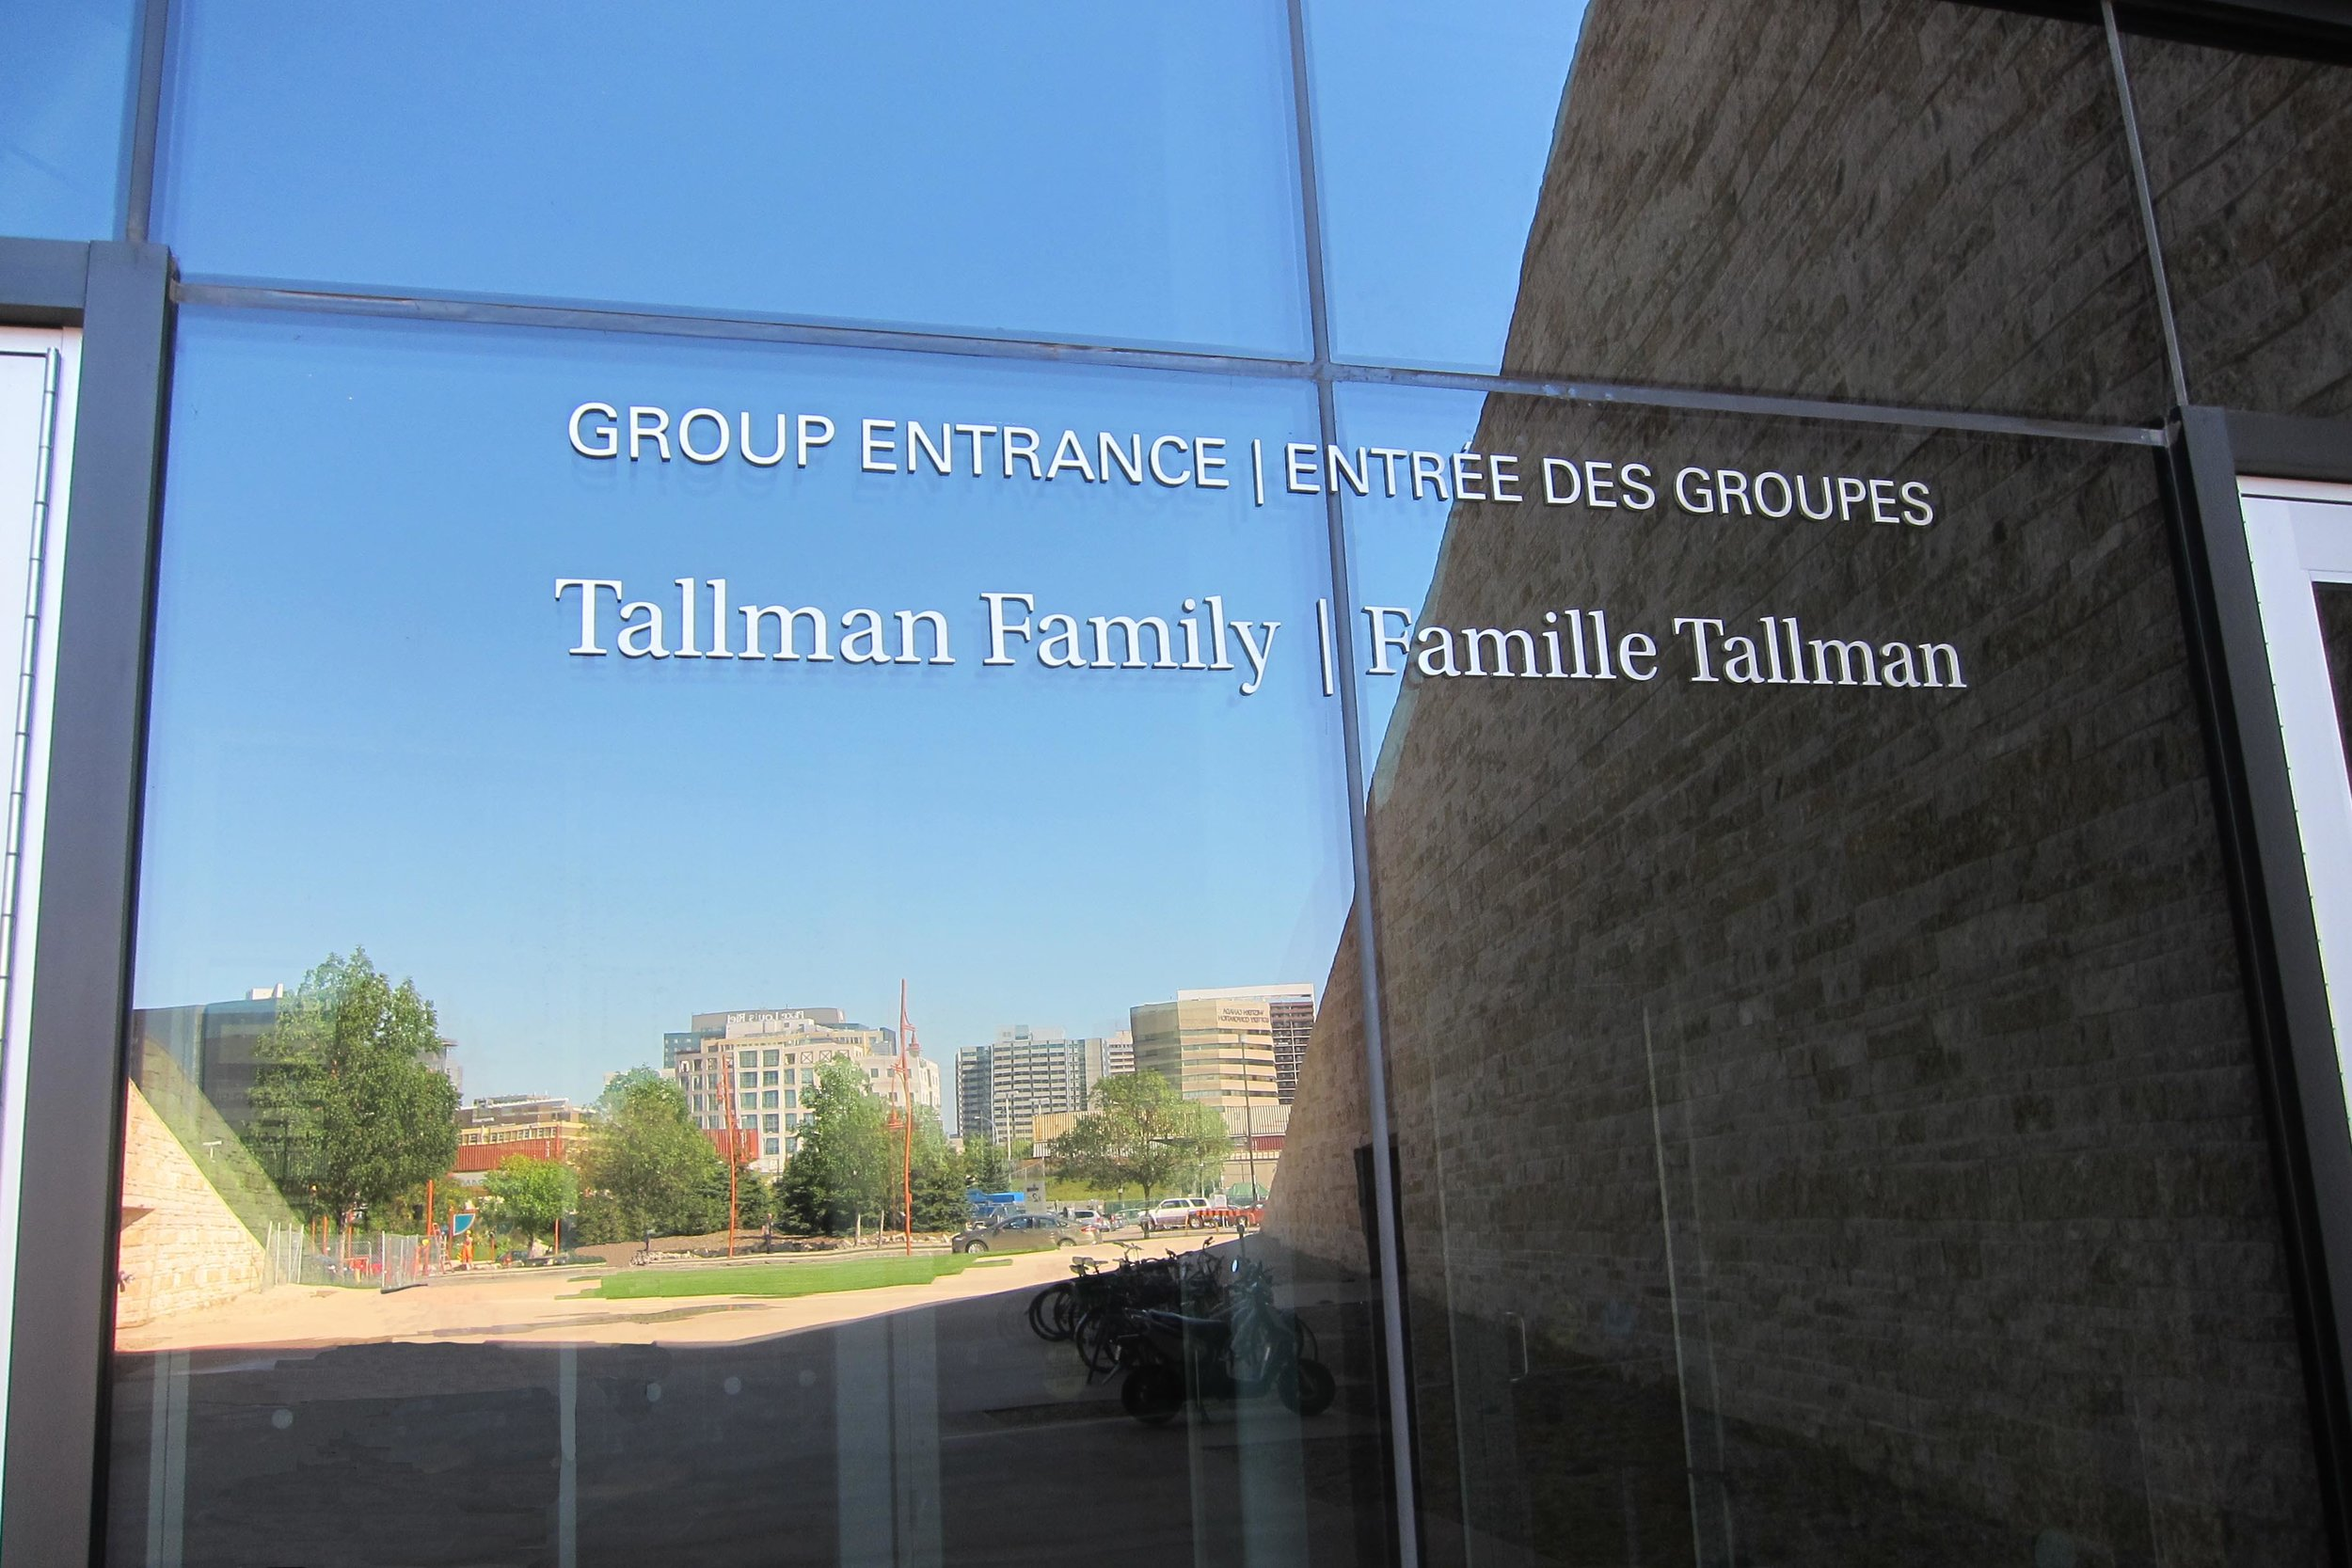 Exterior Signage On Glass